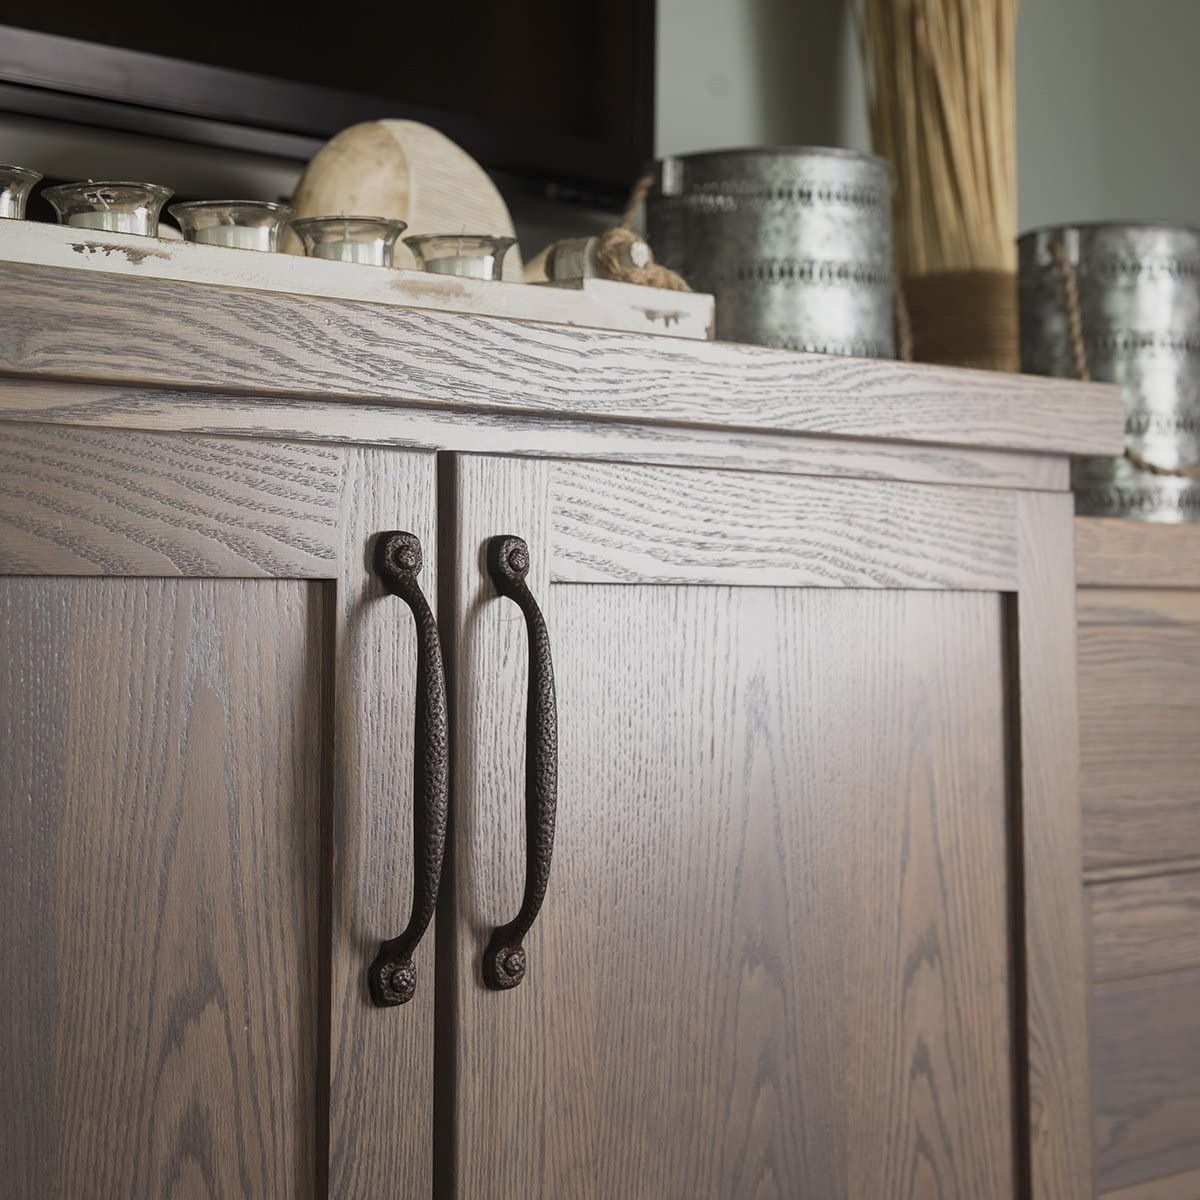 Hickory Hardware P3001 Bi 3 Inch Refined Rustic Pull Black Iron Cabinet And Furniture Pulls Amaz Hickory Hardware Rustic Cabinet Hardware Cabinet Hardware